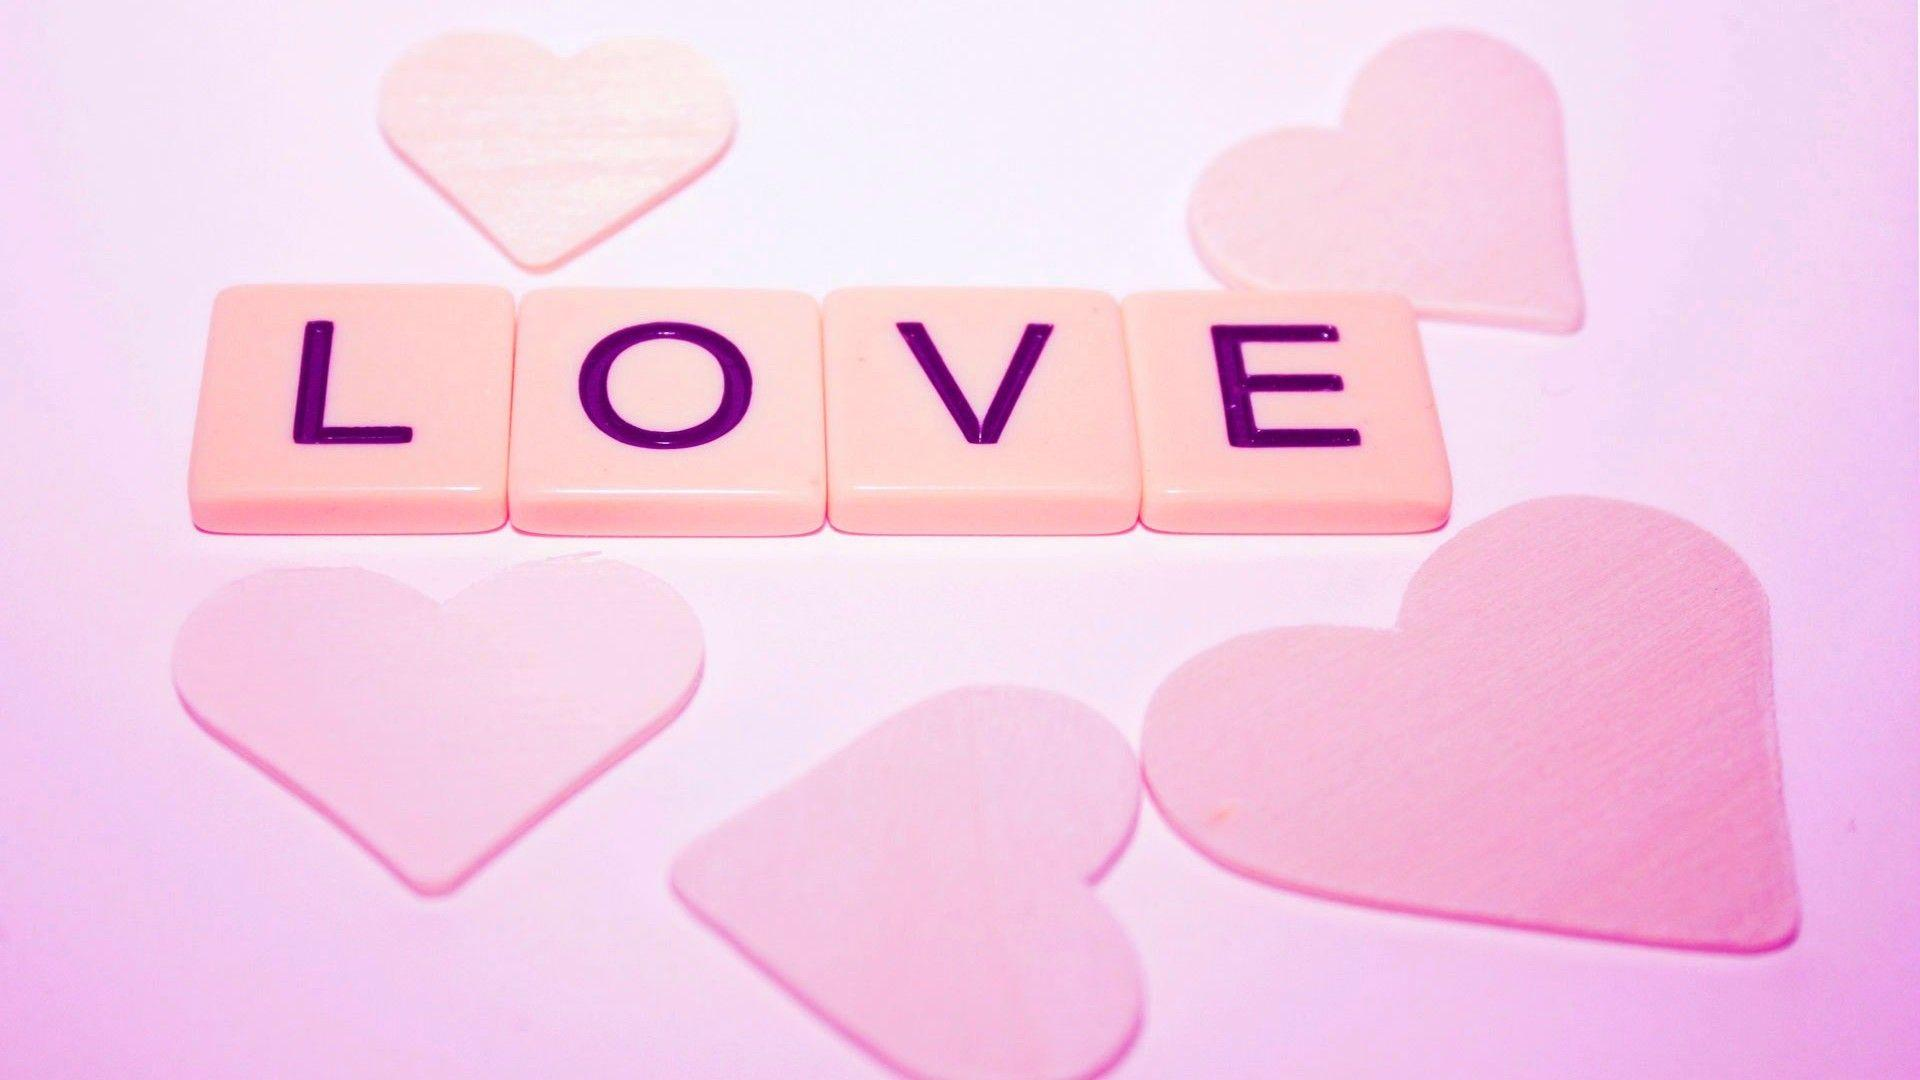 Wallpaper Love And cute : cute Love Backgrounds - Wallpaper cave